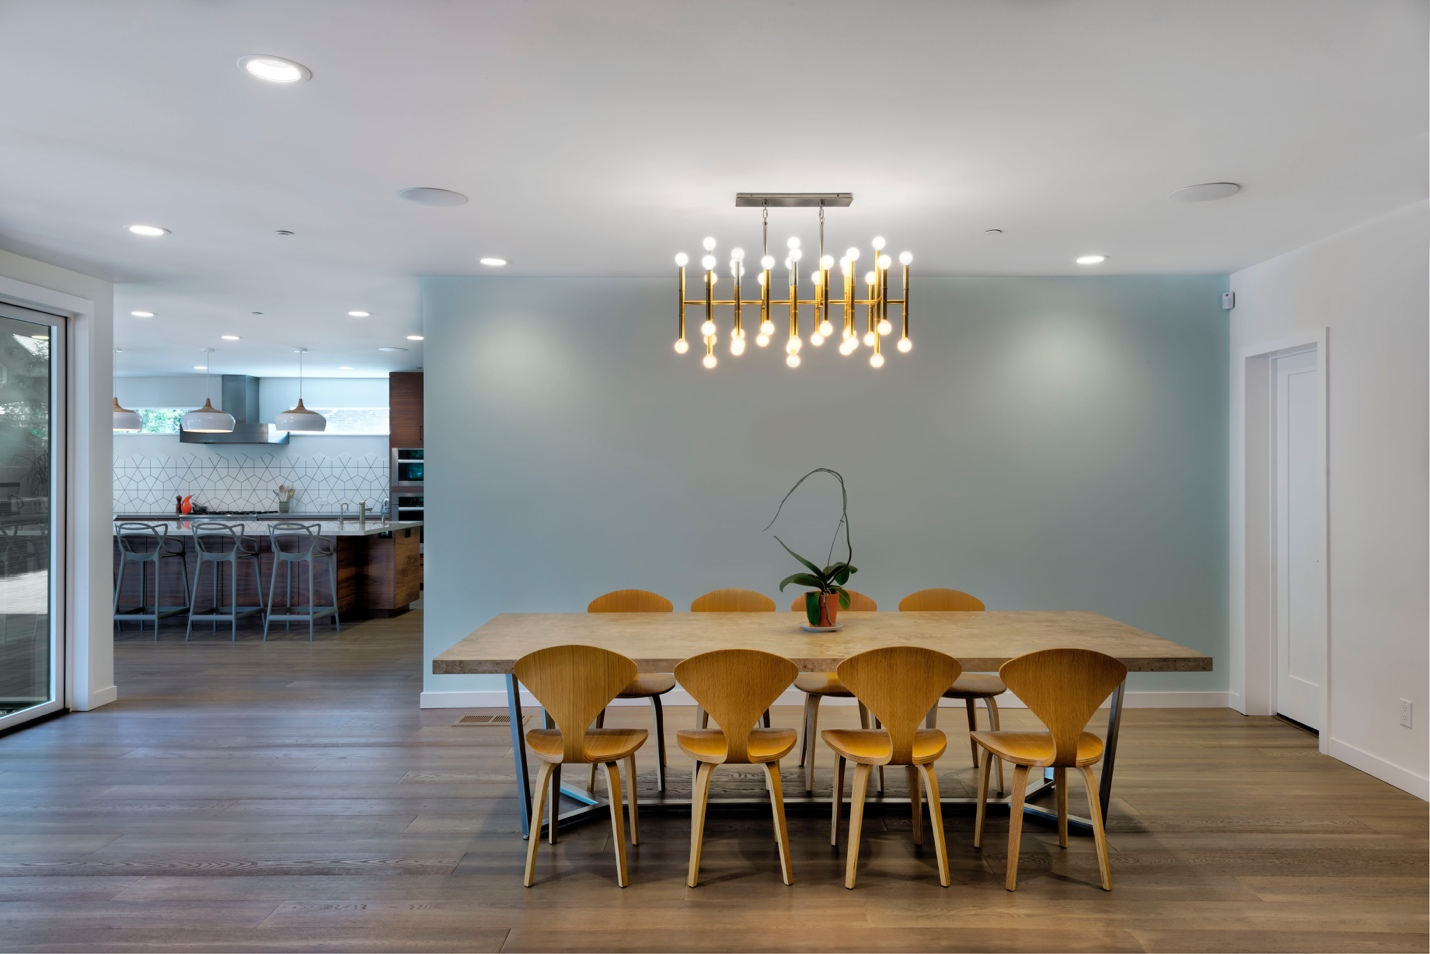 Mdesignarchitect, Dinning room design,Los Altos